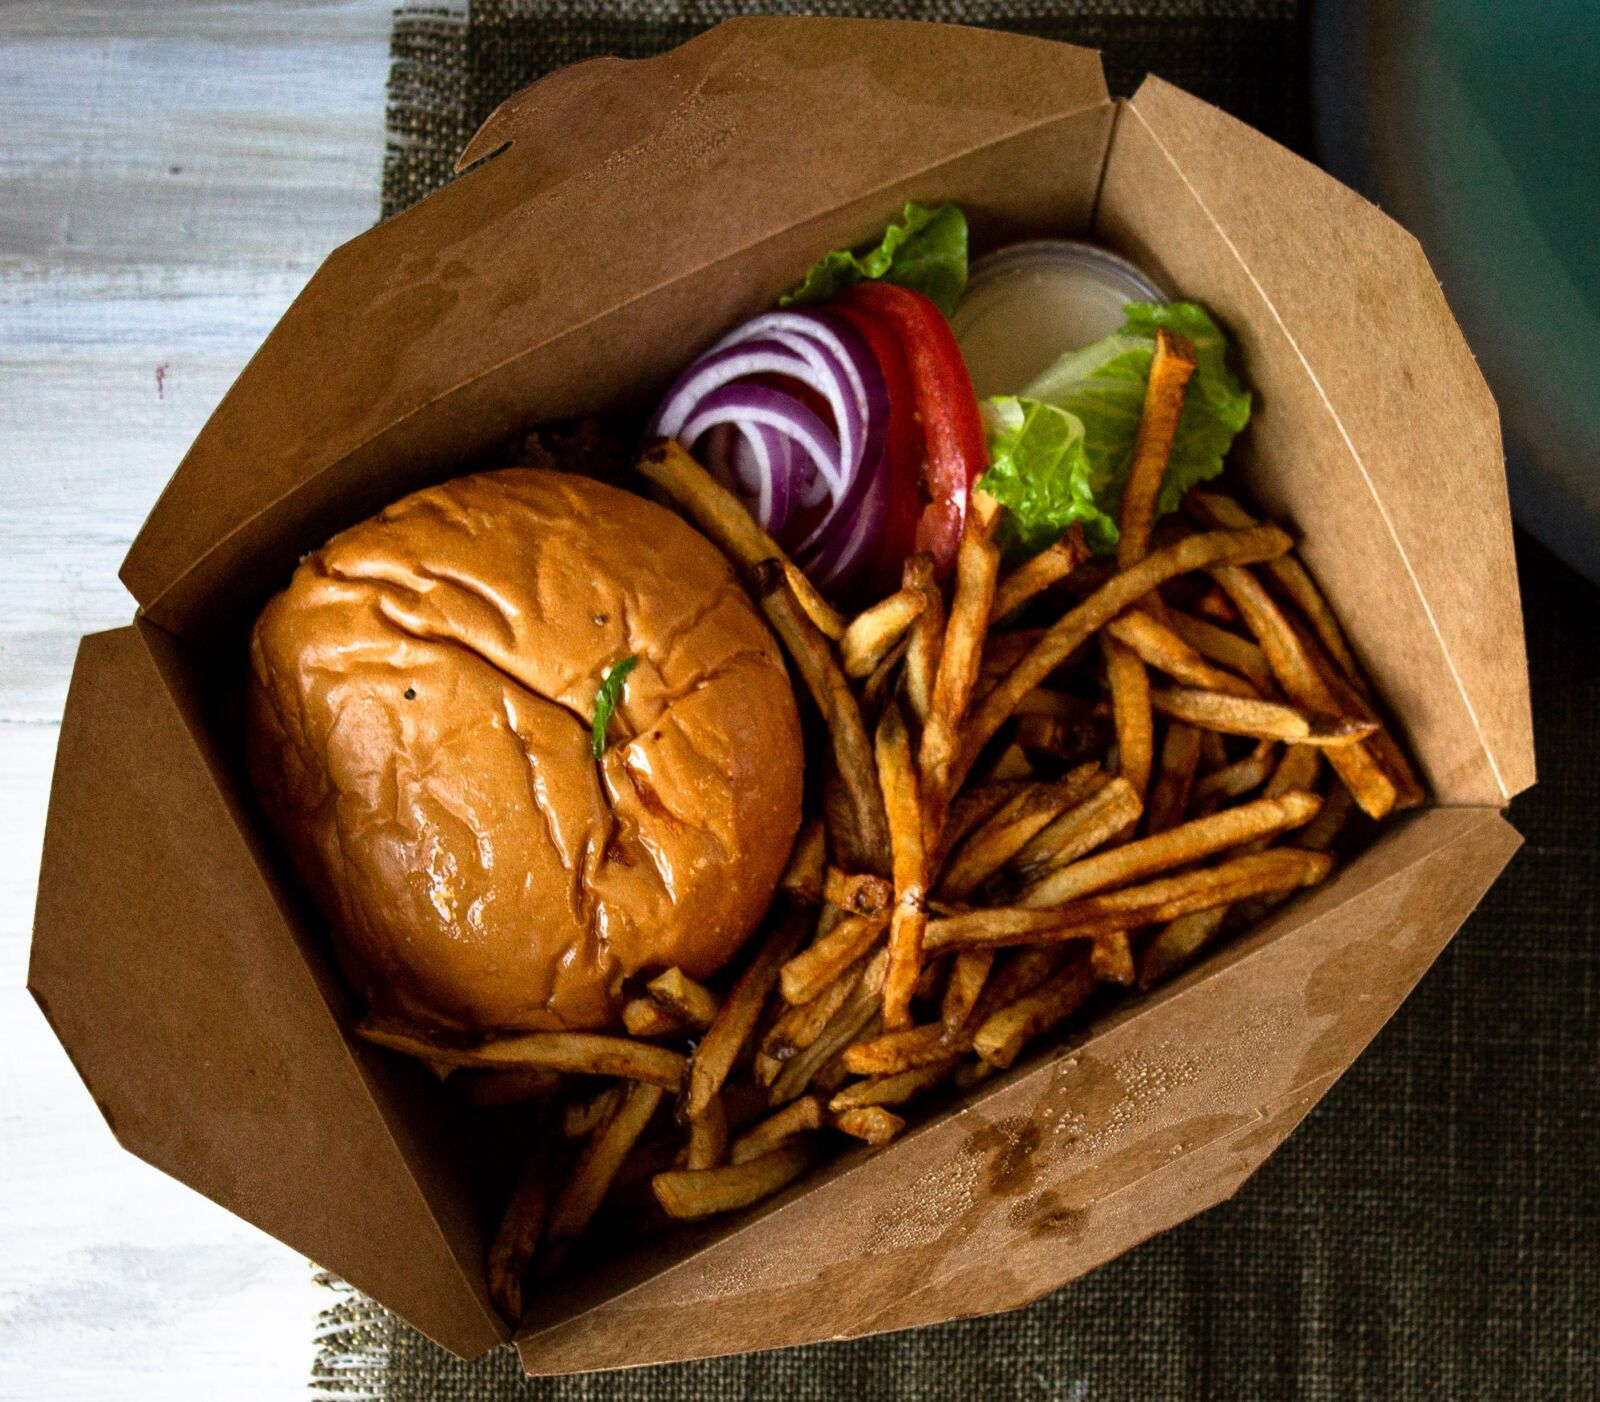 To go burger and fries